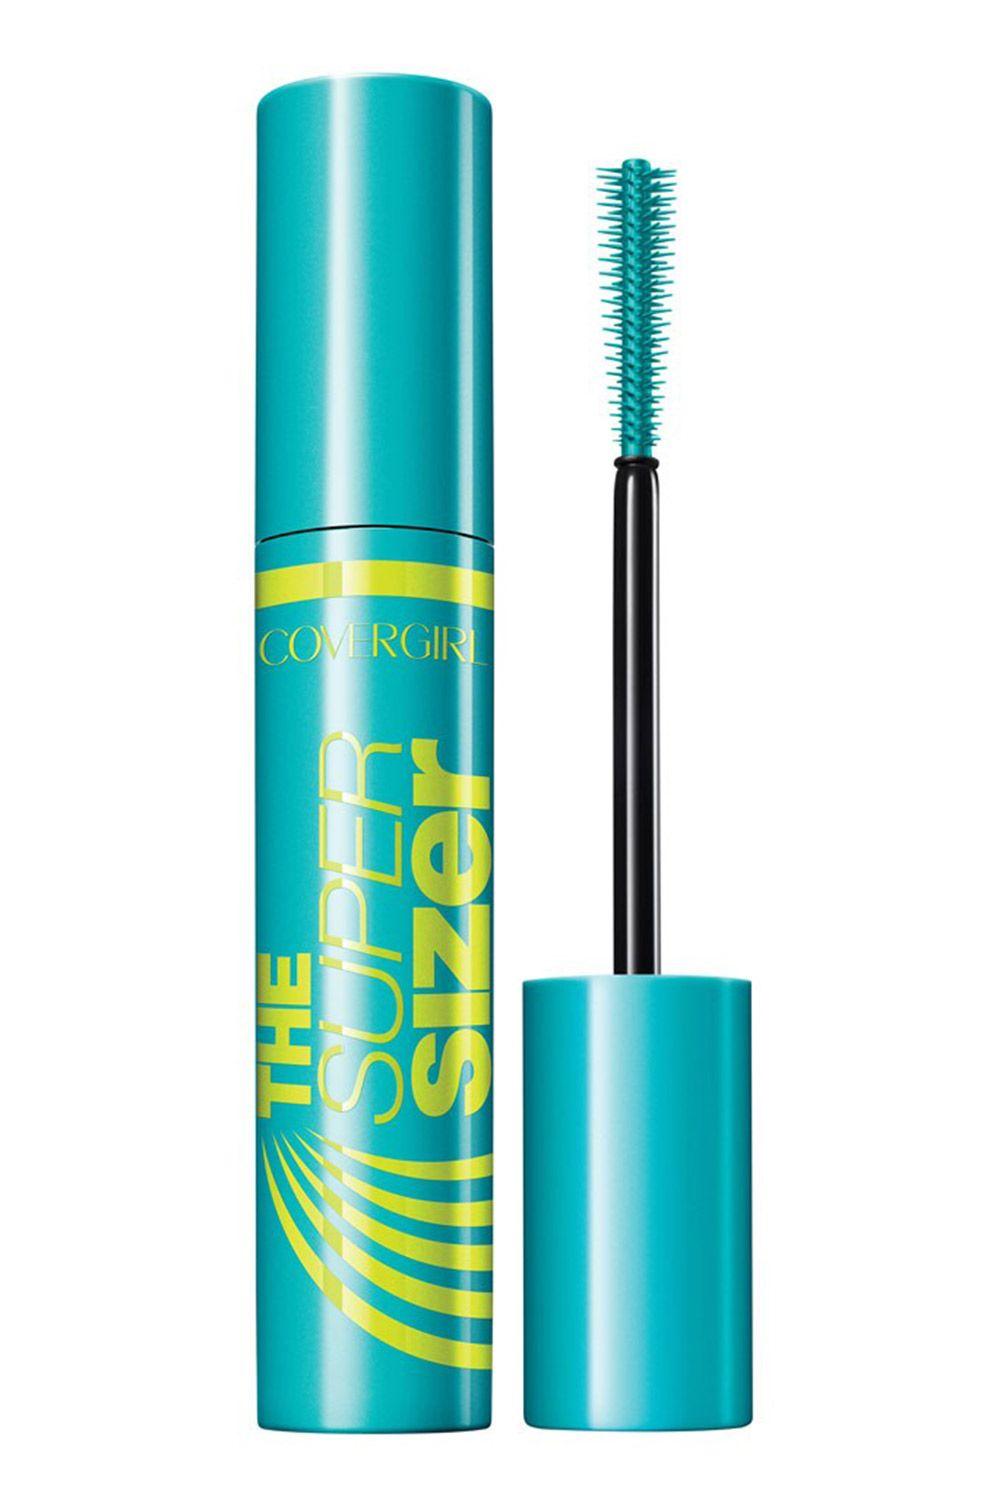 """<p>Designed for those of us who aren't blessed with <a href=""""https://www.instagram.com/p/BFRhKnQrs40/?taken-by=marieclairemag"""" target=""""_blank"""">Bambi lashes</a>, Covergirl's new Lash Blast formula lengthens stubby lashes with a twirl of its fanning wand. Use for the best effect at events where you want to keep all eyes on your eyes. </p><p><strong>The Super Sizer by Lash Blash Waterproof Mascara, $7&#x3B; <a href=""""https://www.covergirl.com/beauty-products/eye-makeup/mascara/super-sizer-waterproof-mascara"""" target=""""_blank"""">covergirl.com</a>. </strong></p>"""